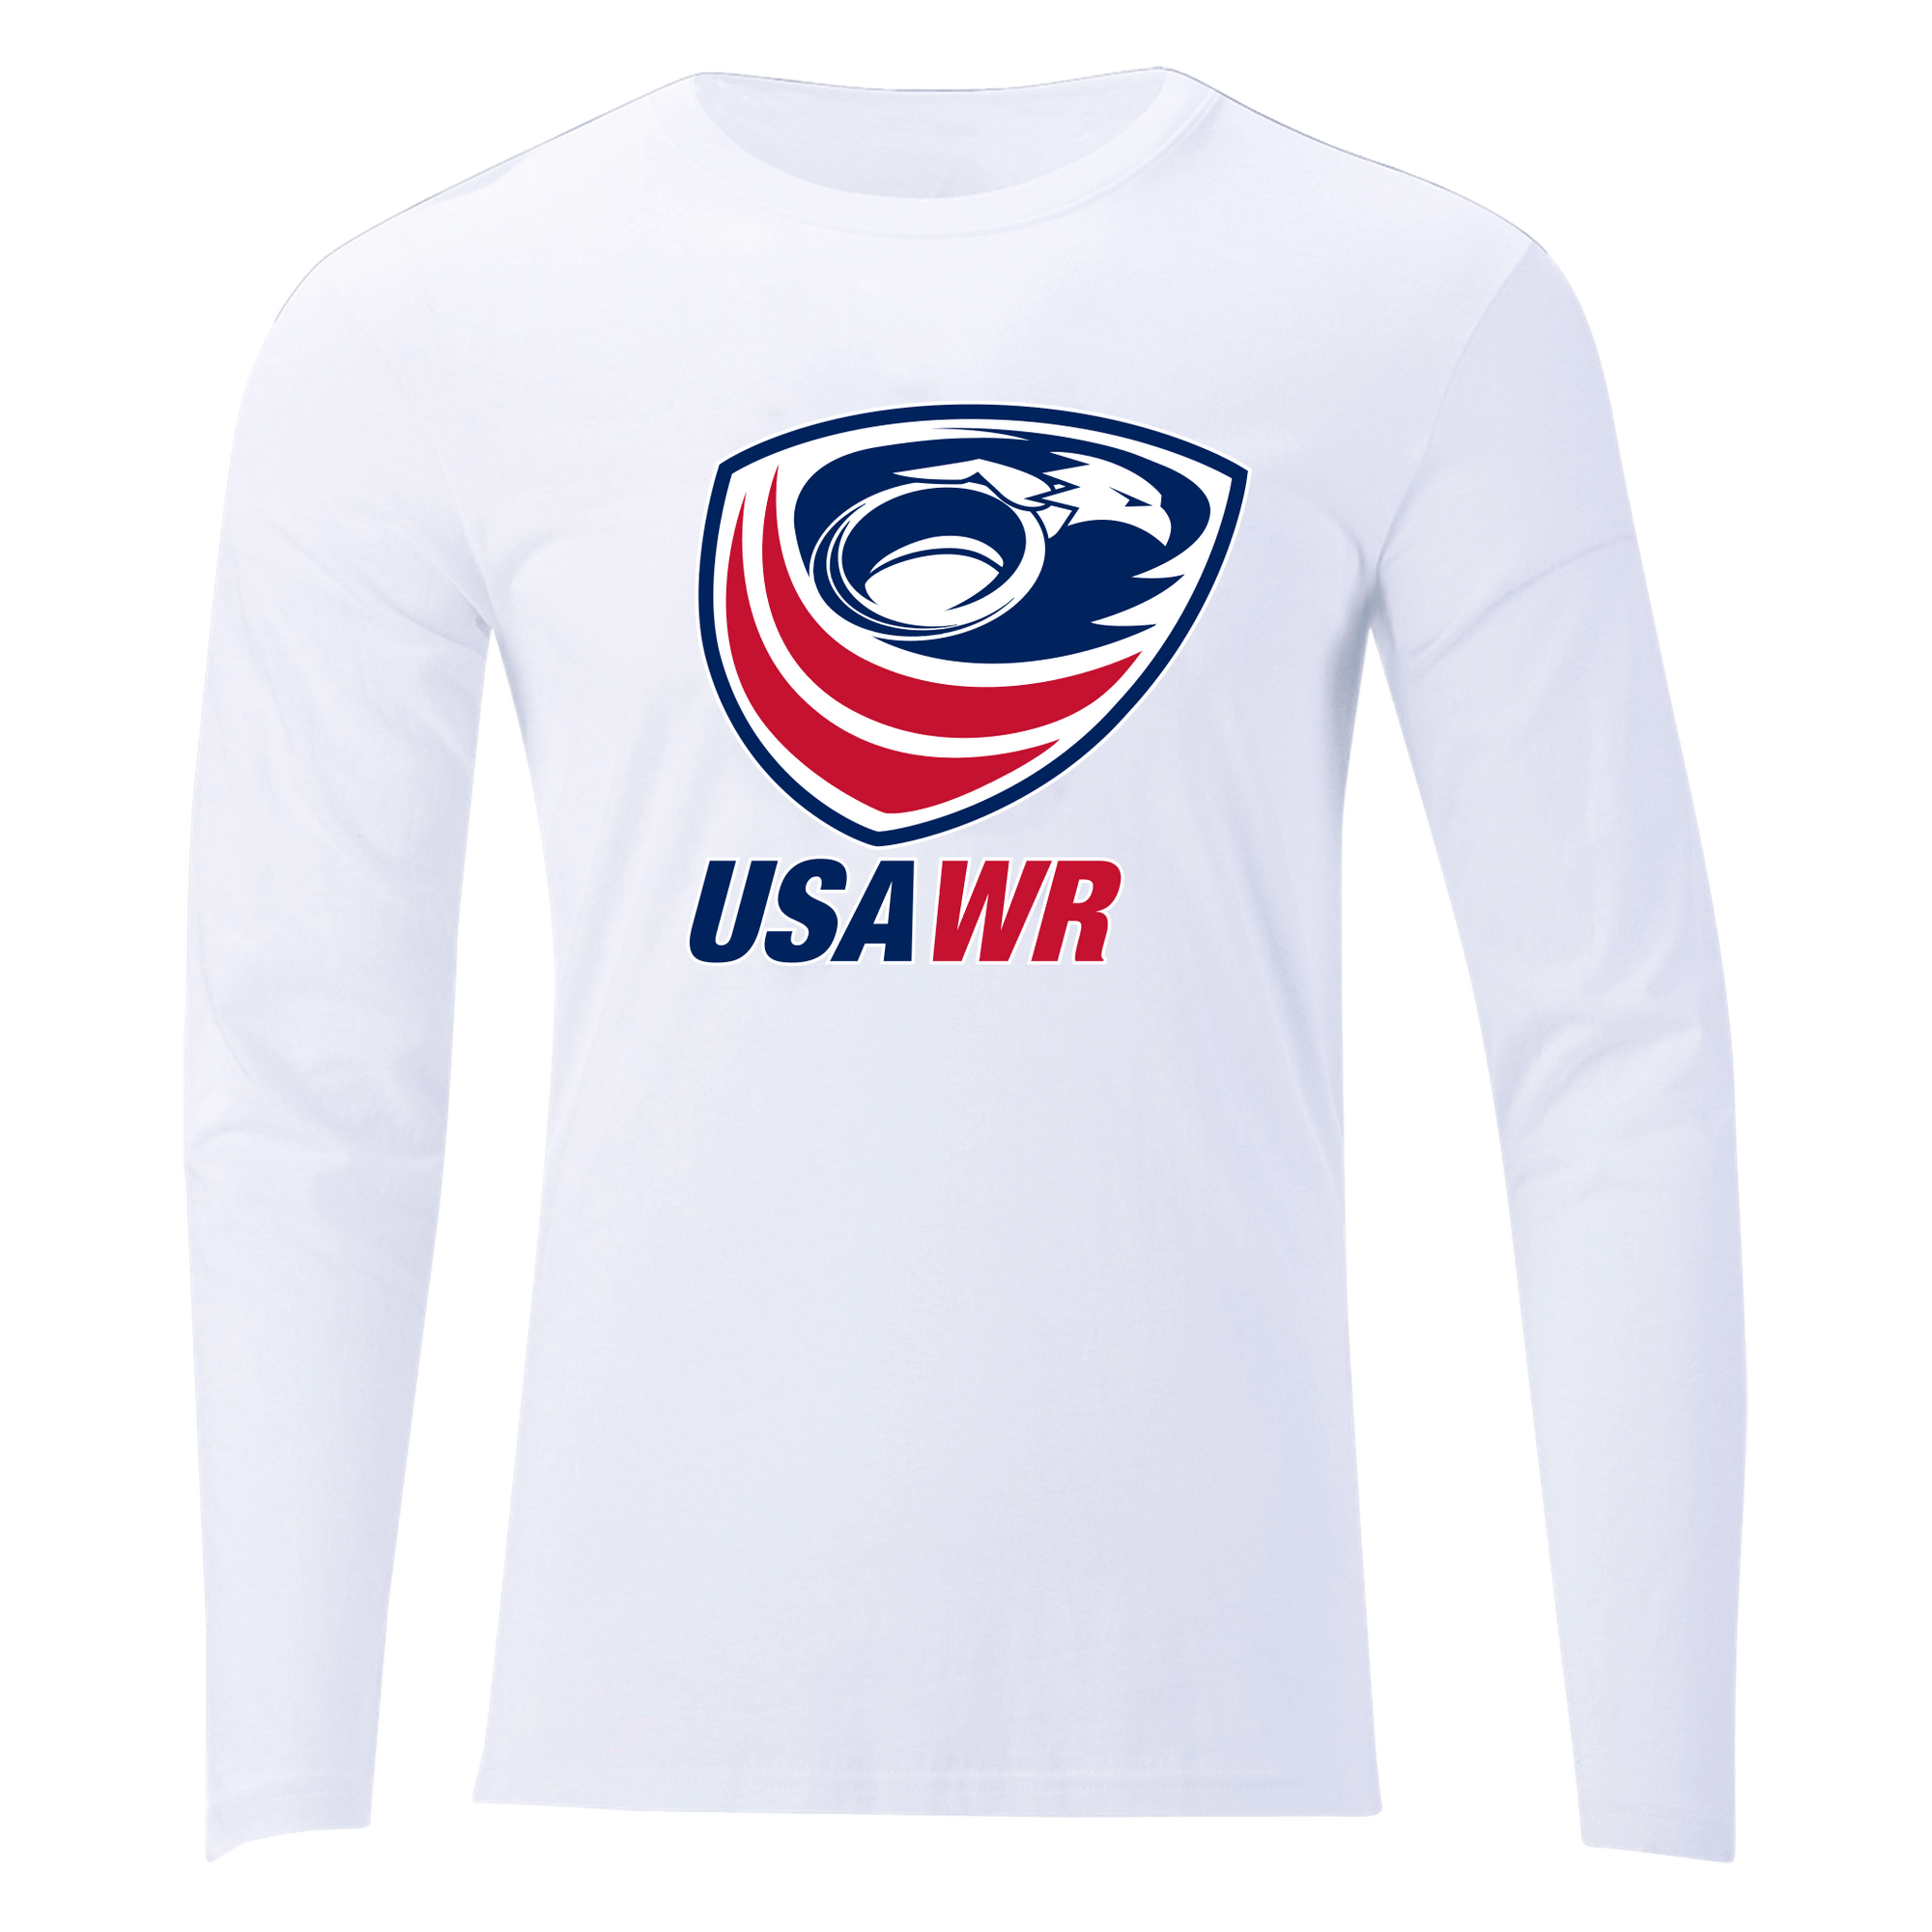 USA Wheelchair Rugby Off Field T-Shirt LS White